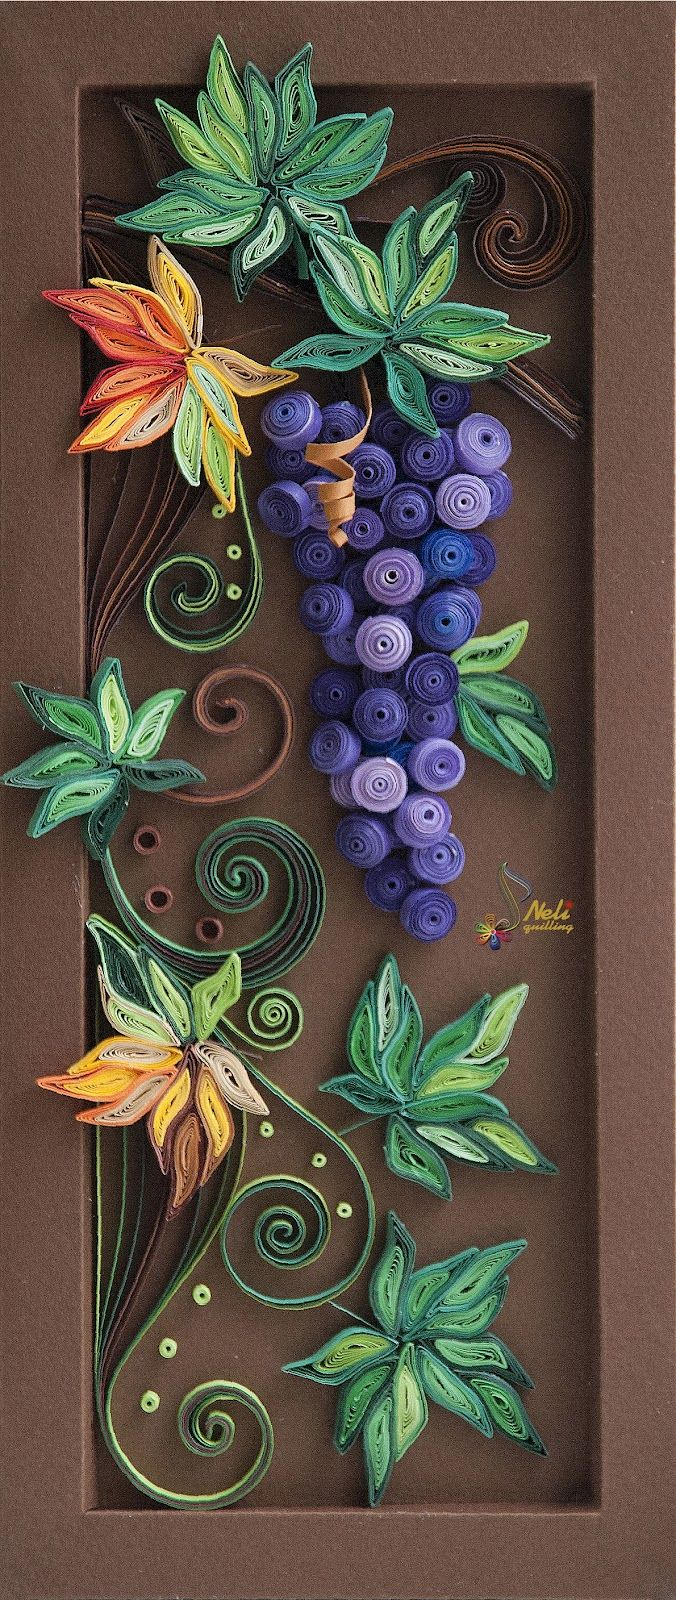 The most beautiful quilling I've ever seen.....How i wishhhhhh...